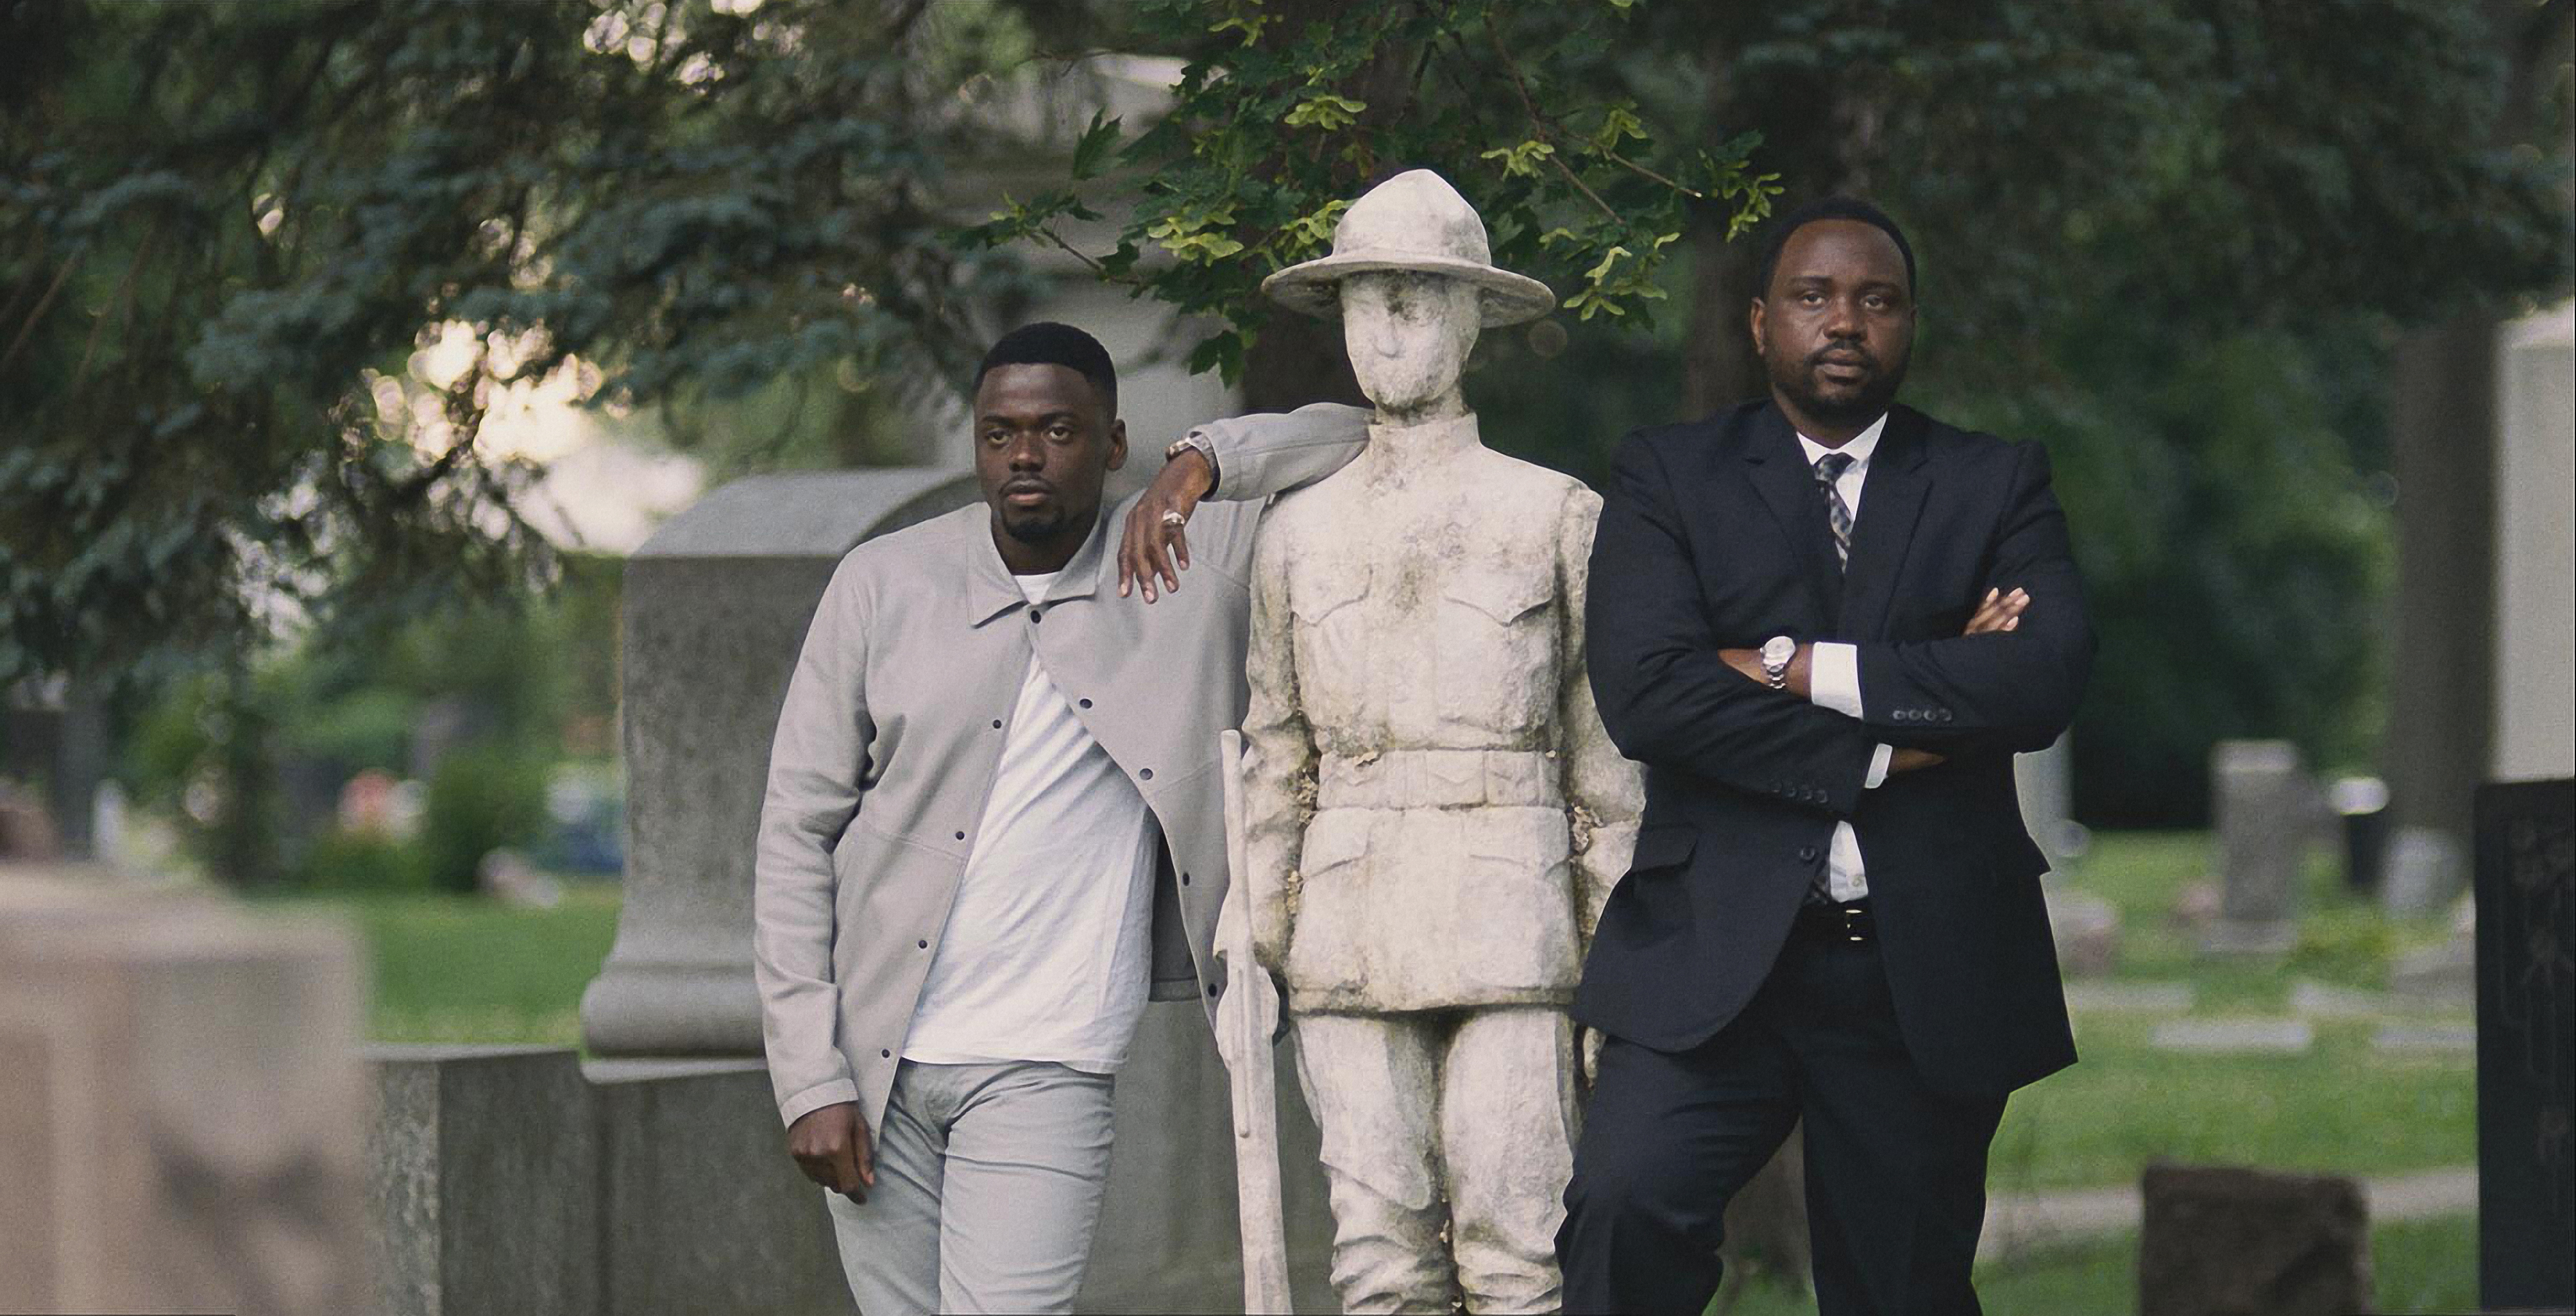 Daniel Kaluuya and Brian Tyree Henry in Twentieth Century Fox's WIDOWS. Photo Credit: Courtesy Twentieth Century Fox.